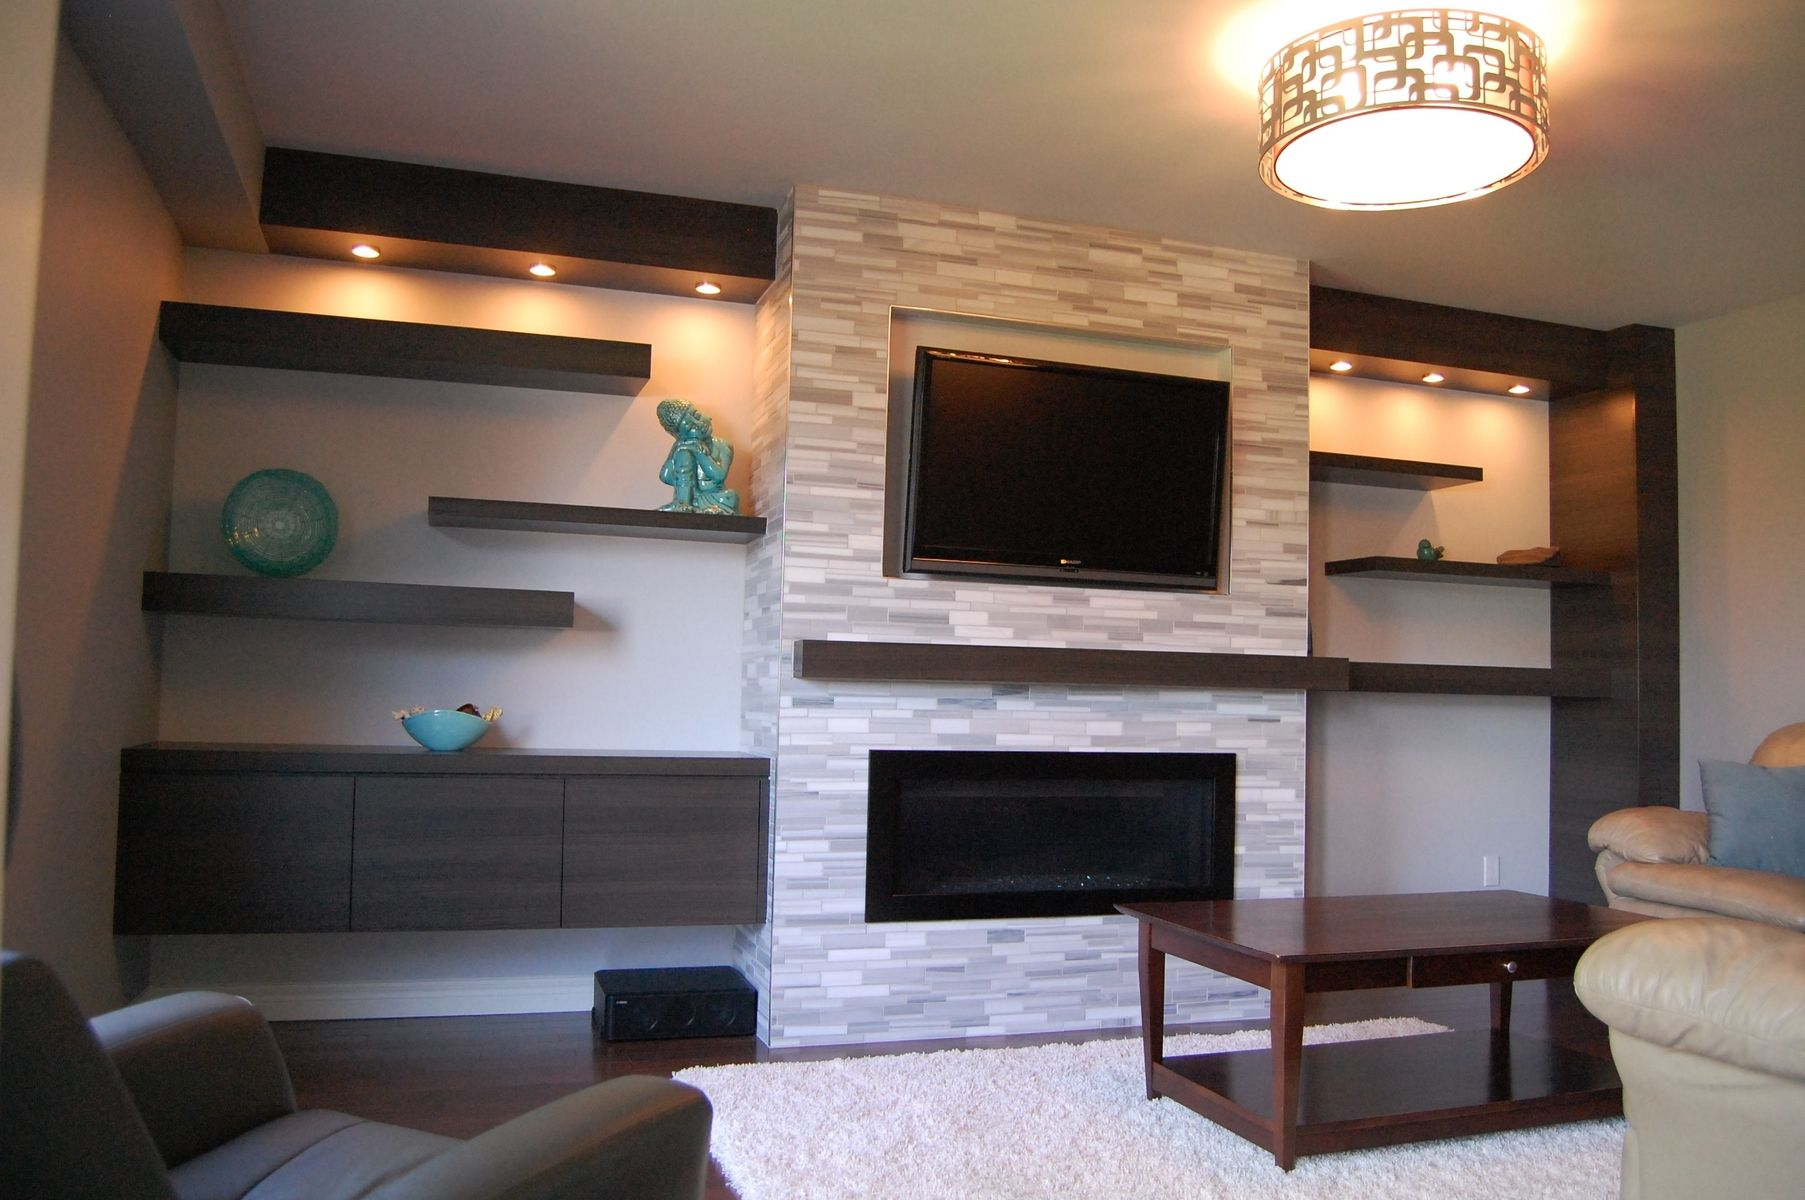 Built In Shelving Around Fireplace And Tv Floating Shelves Less